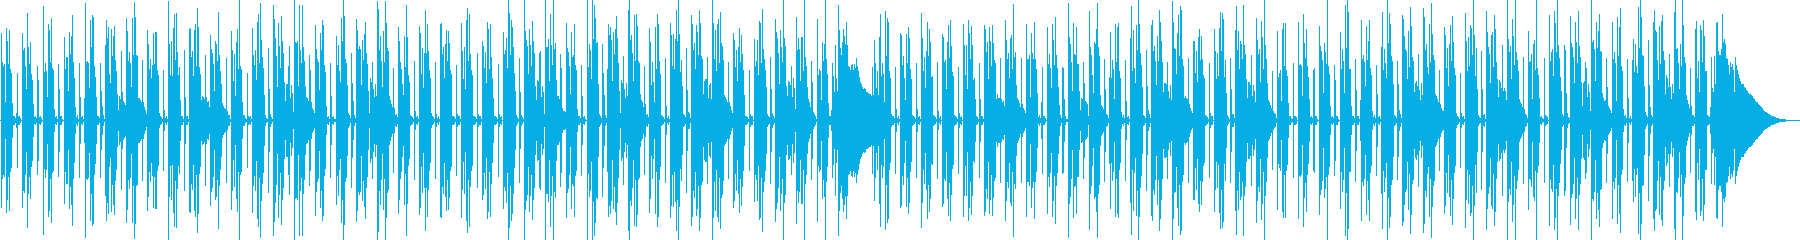 Relaxed and cute everyday pop music's reproduced waveform